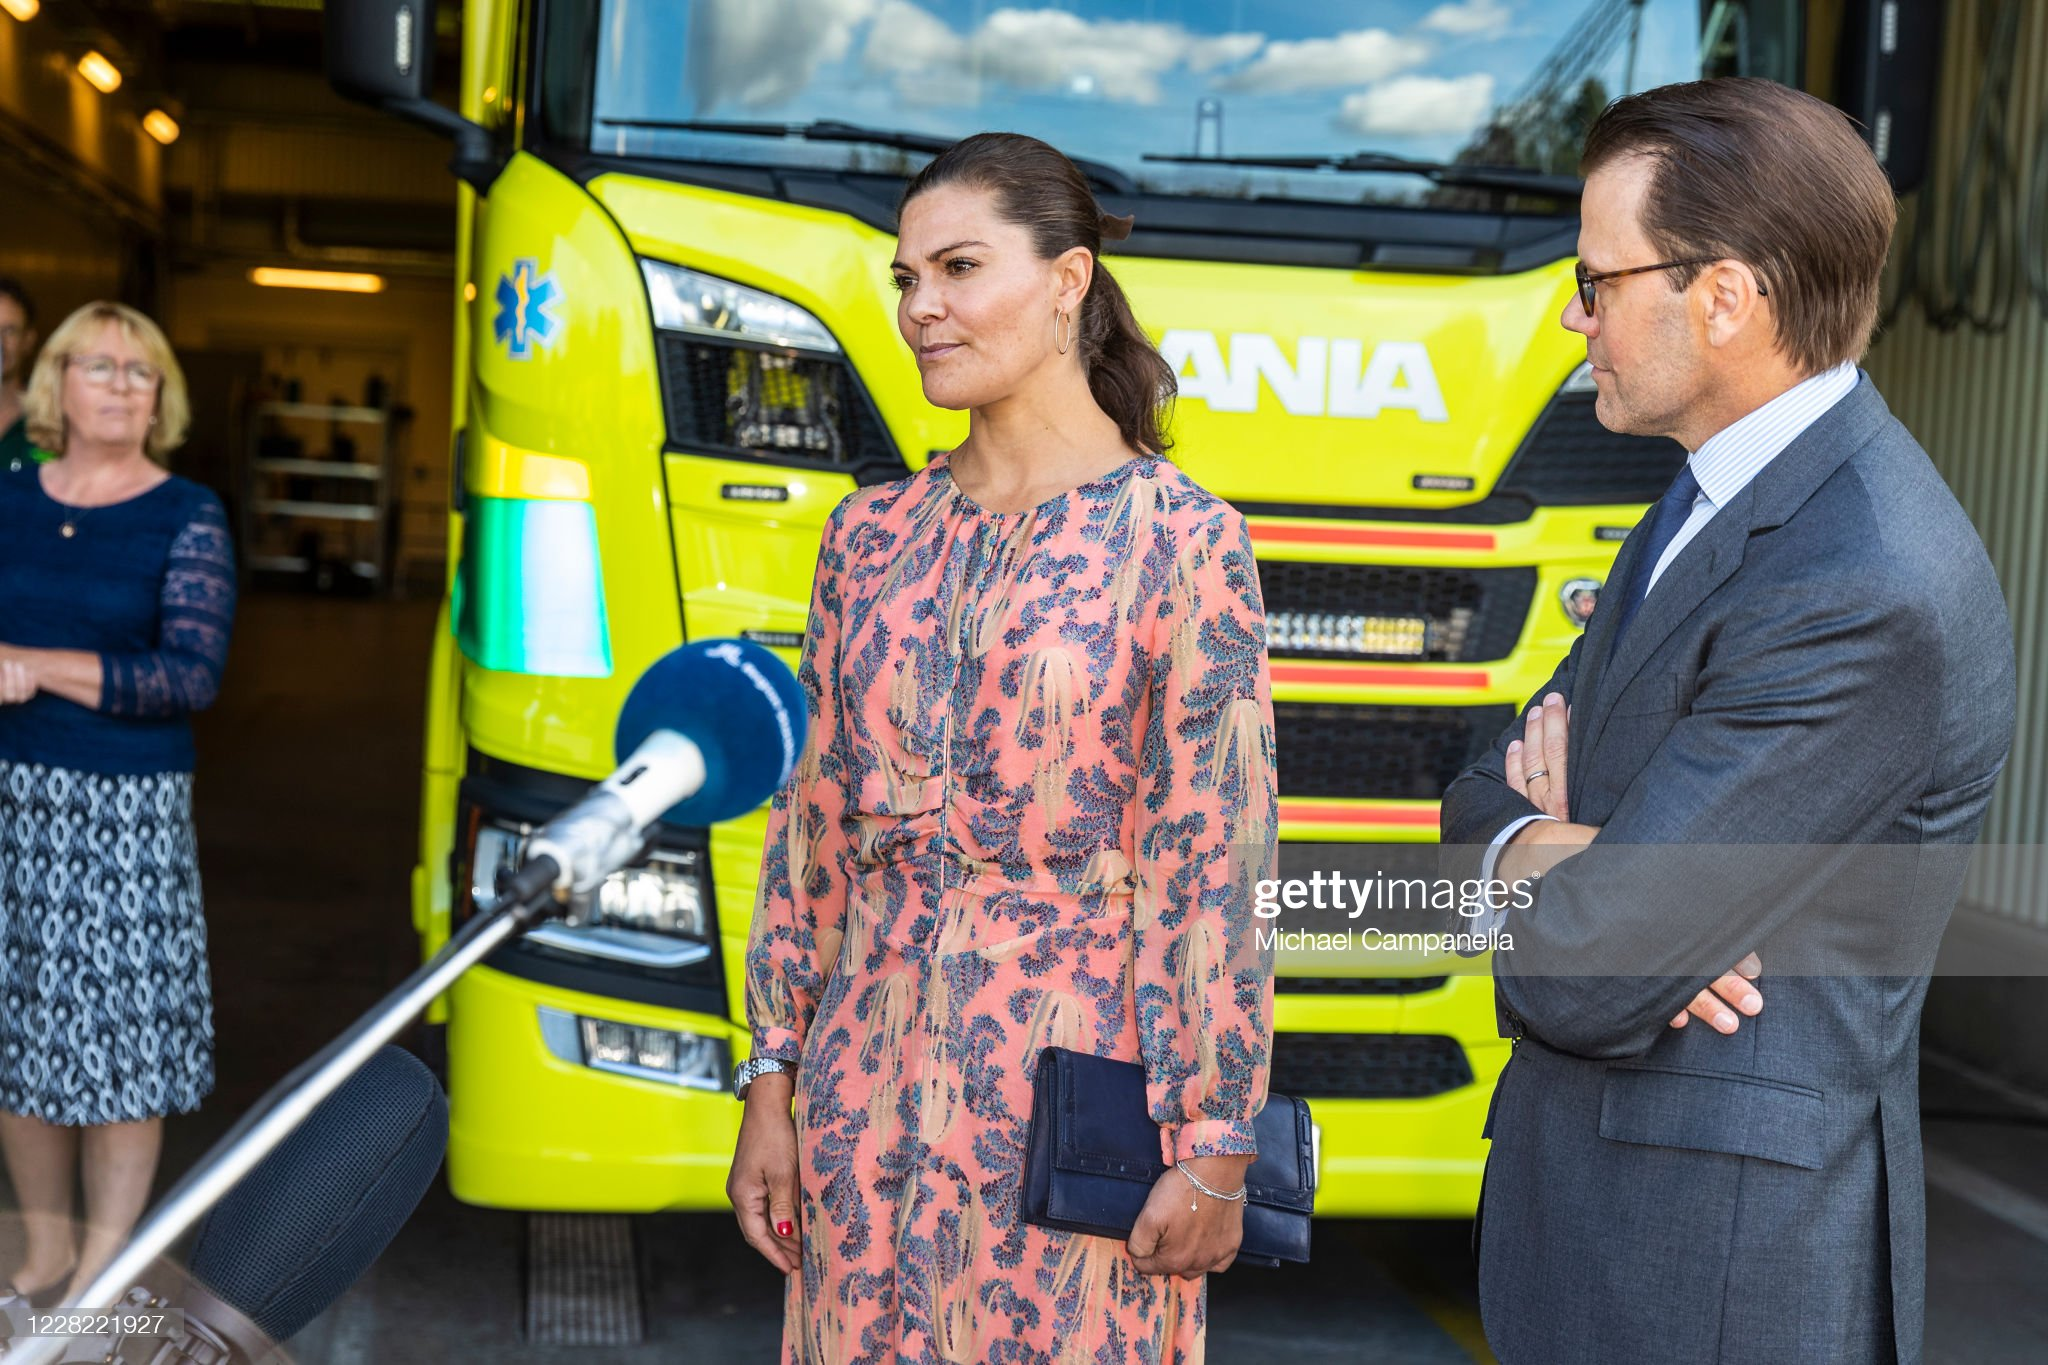 crown-princess-victoria-and-prince-daniel-of-sweden-visit-an-station-picture-id1228221927